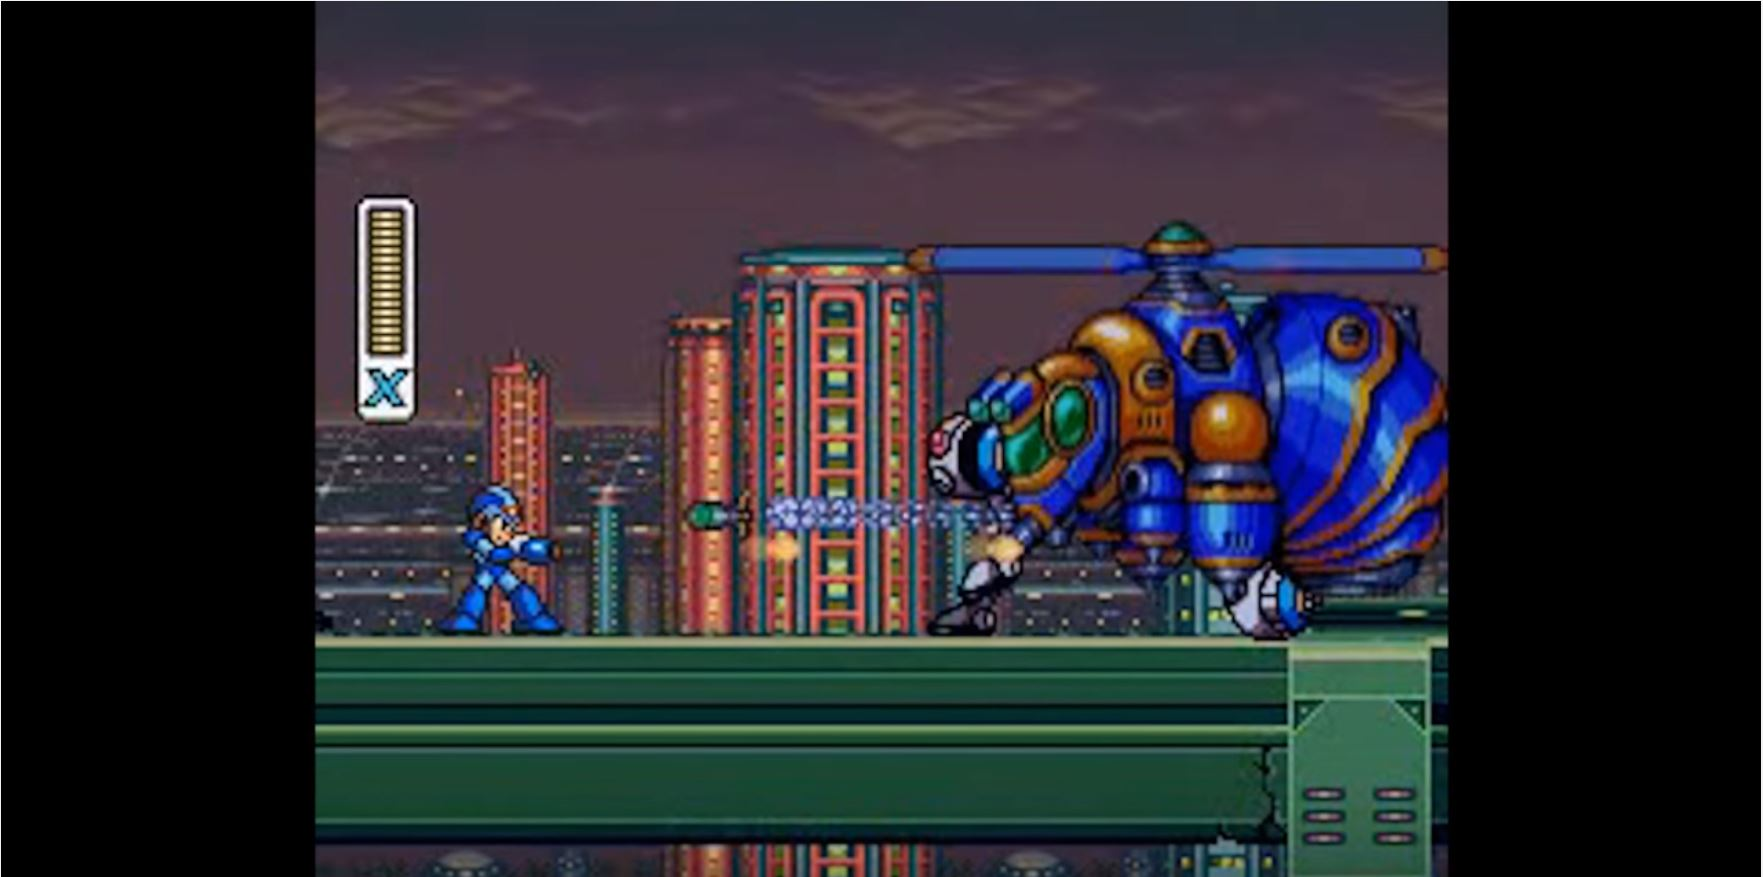 Storytelling Structures In MegaMan X - April 27, 2017